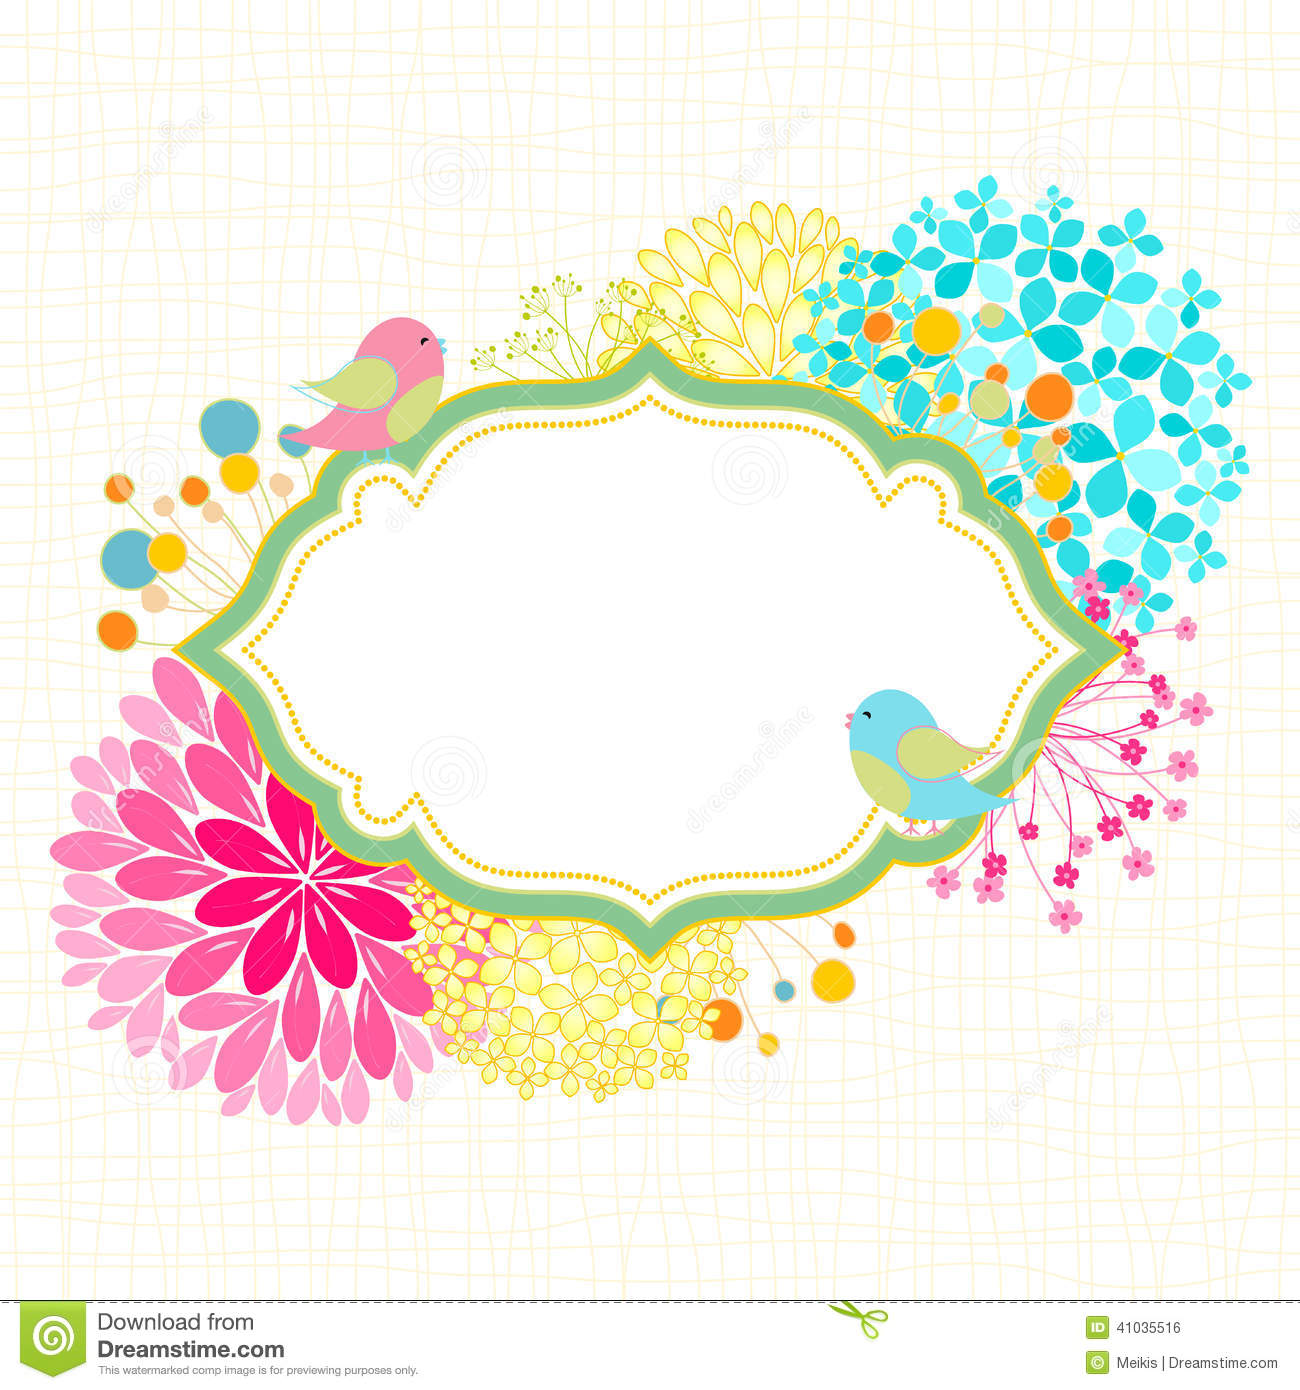 Colorful Flower Bird Garden Party Invitation Vector Image – Flower Party Invitations